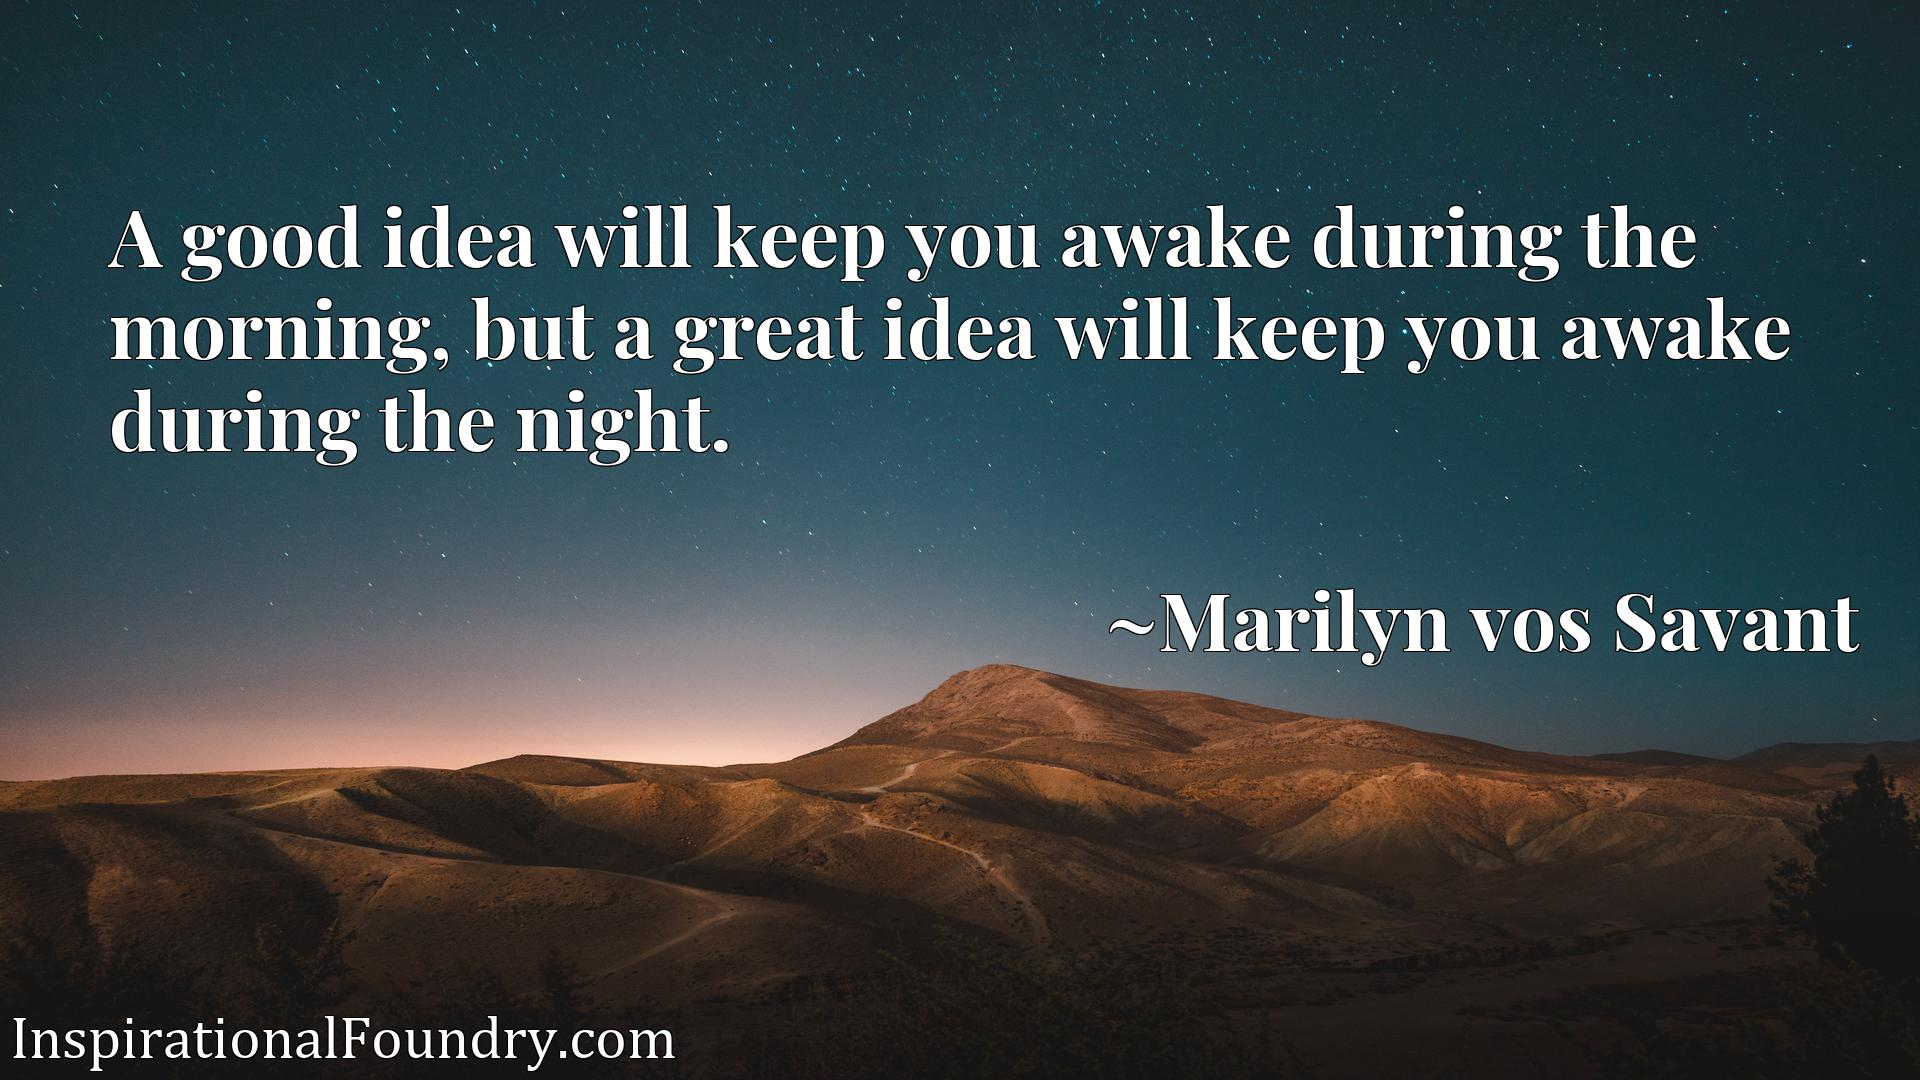 A good idea will keep you awake during the morning, but a great idea will keep you awake during the night.